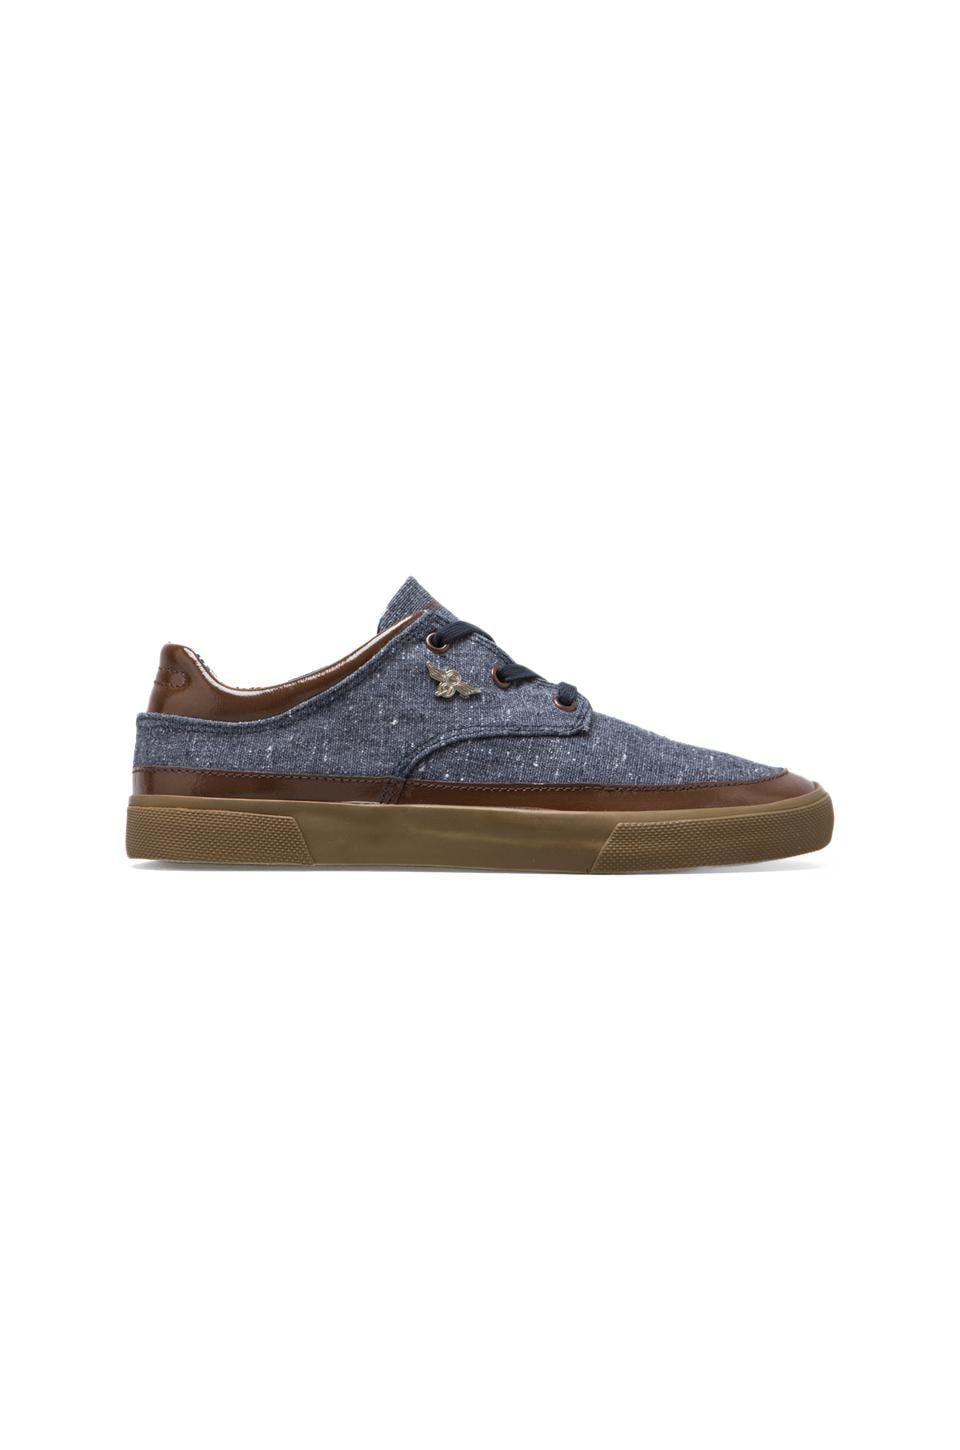 Creative Recreation Lazia in Navy/Brown